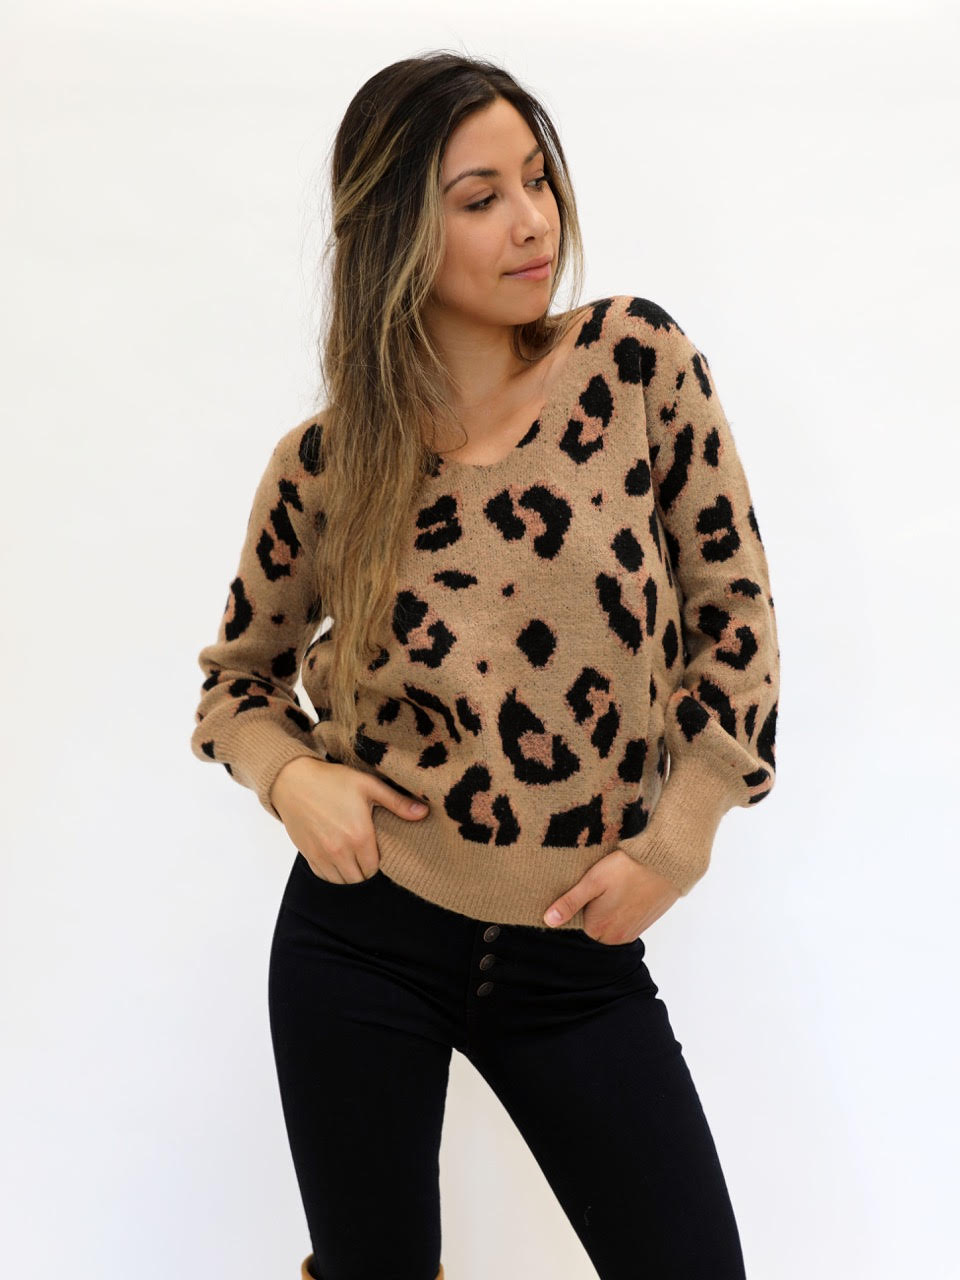 Speak Out Leopard Sweater